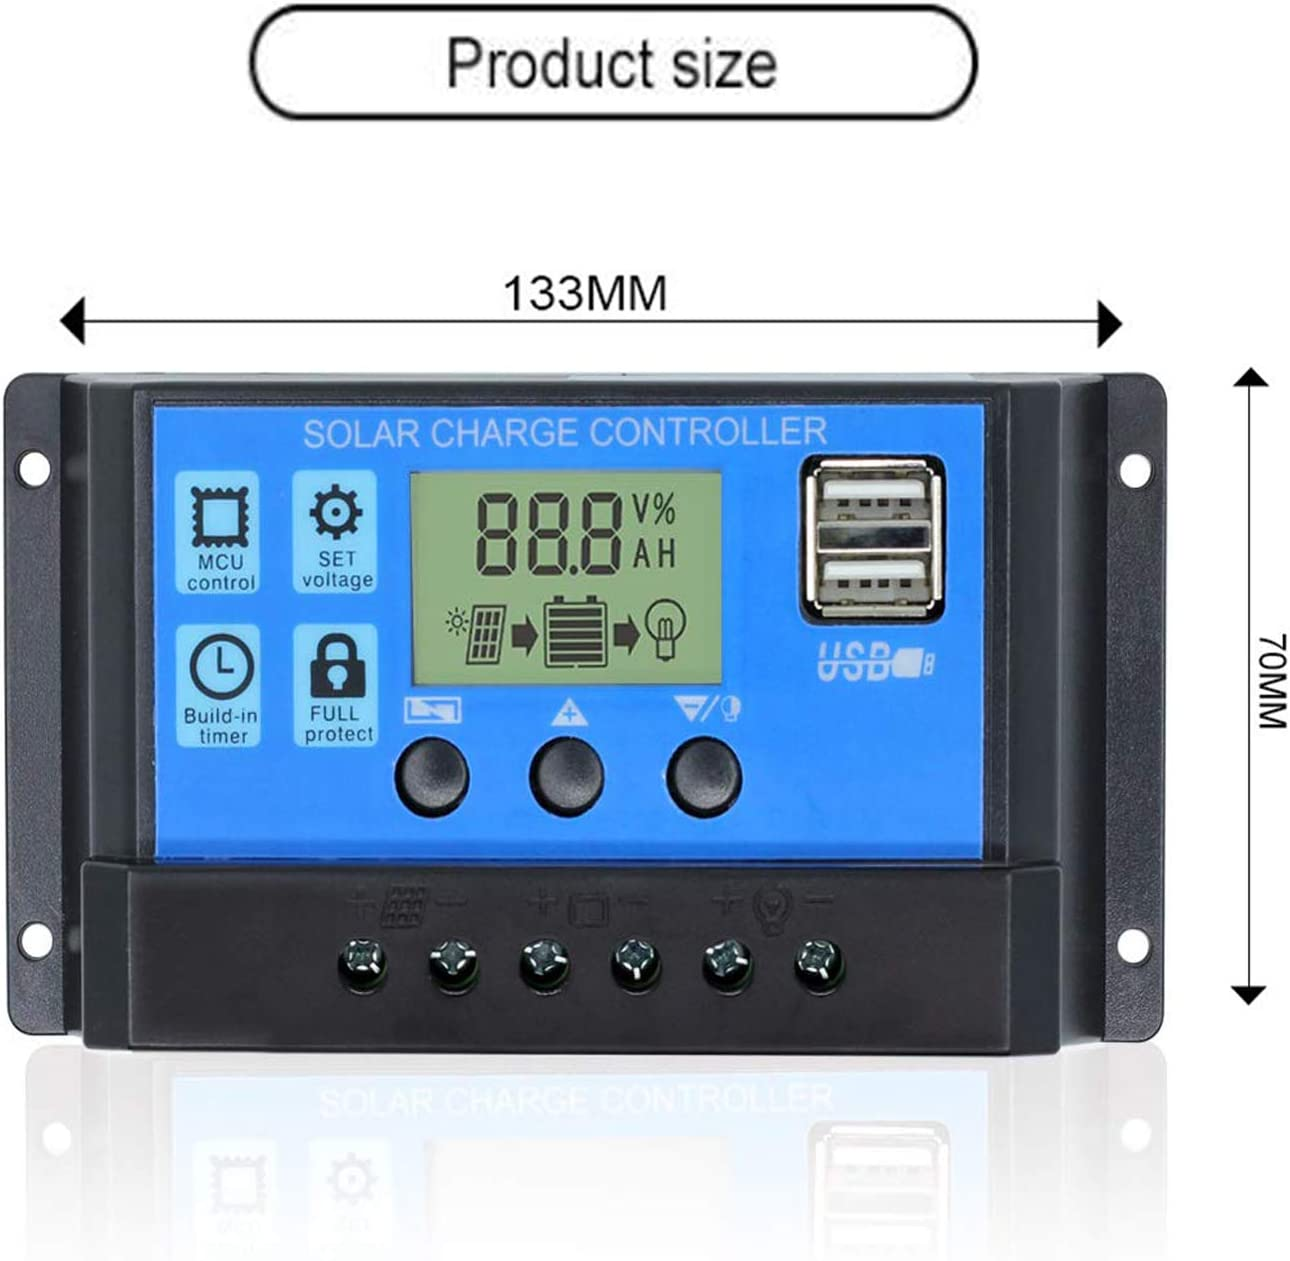 30A Solar Charge Controller, Solar Panel Charge Controller 12V 24V Dual USB Charge Regulator Intelligent, Adjustable Parameter Backlight LCD Display and Timer Setting ON/Off Hours (30A) : Garden & Outdoor